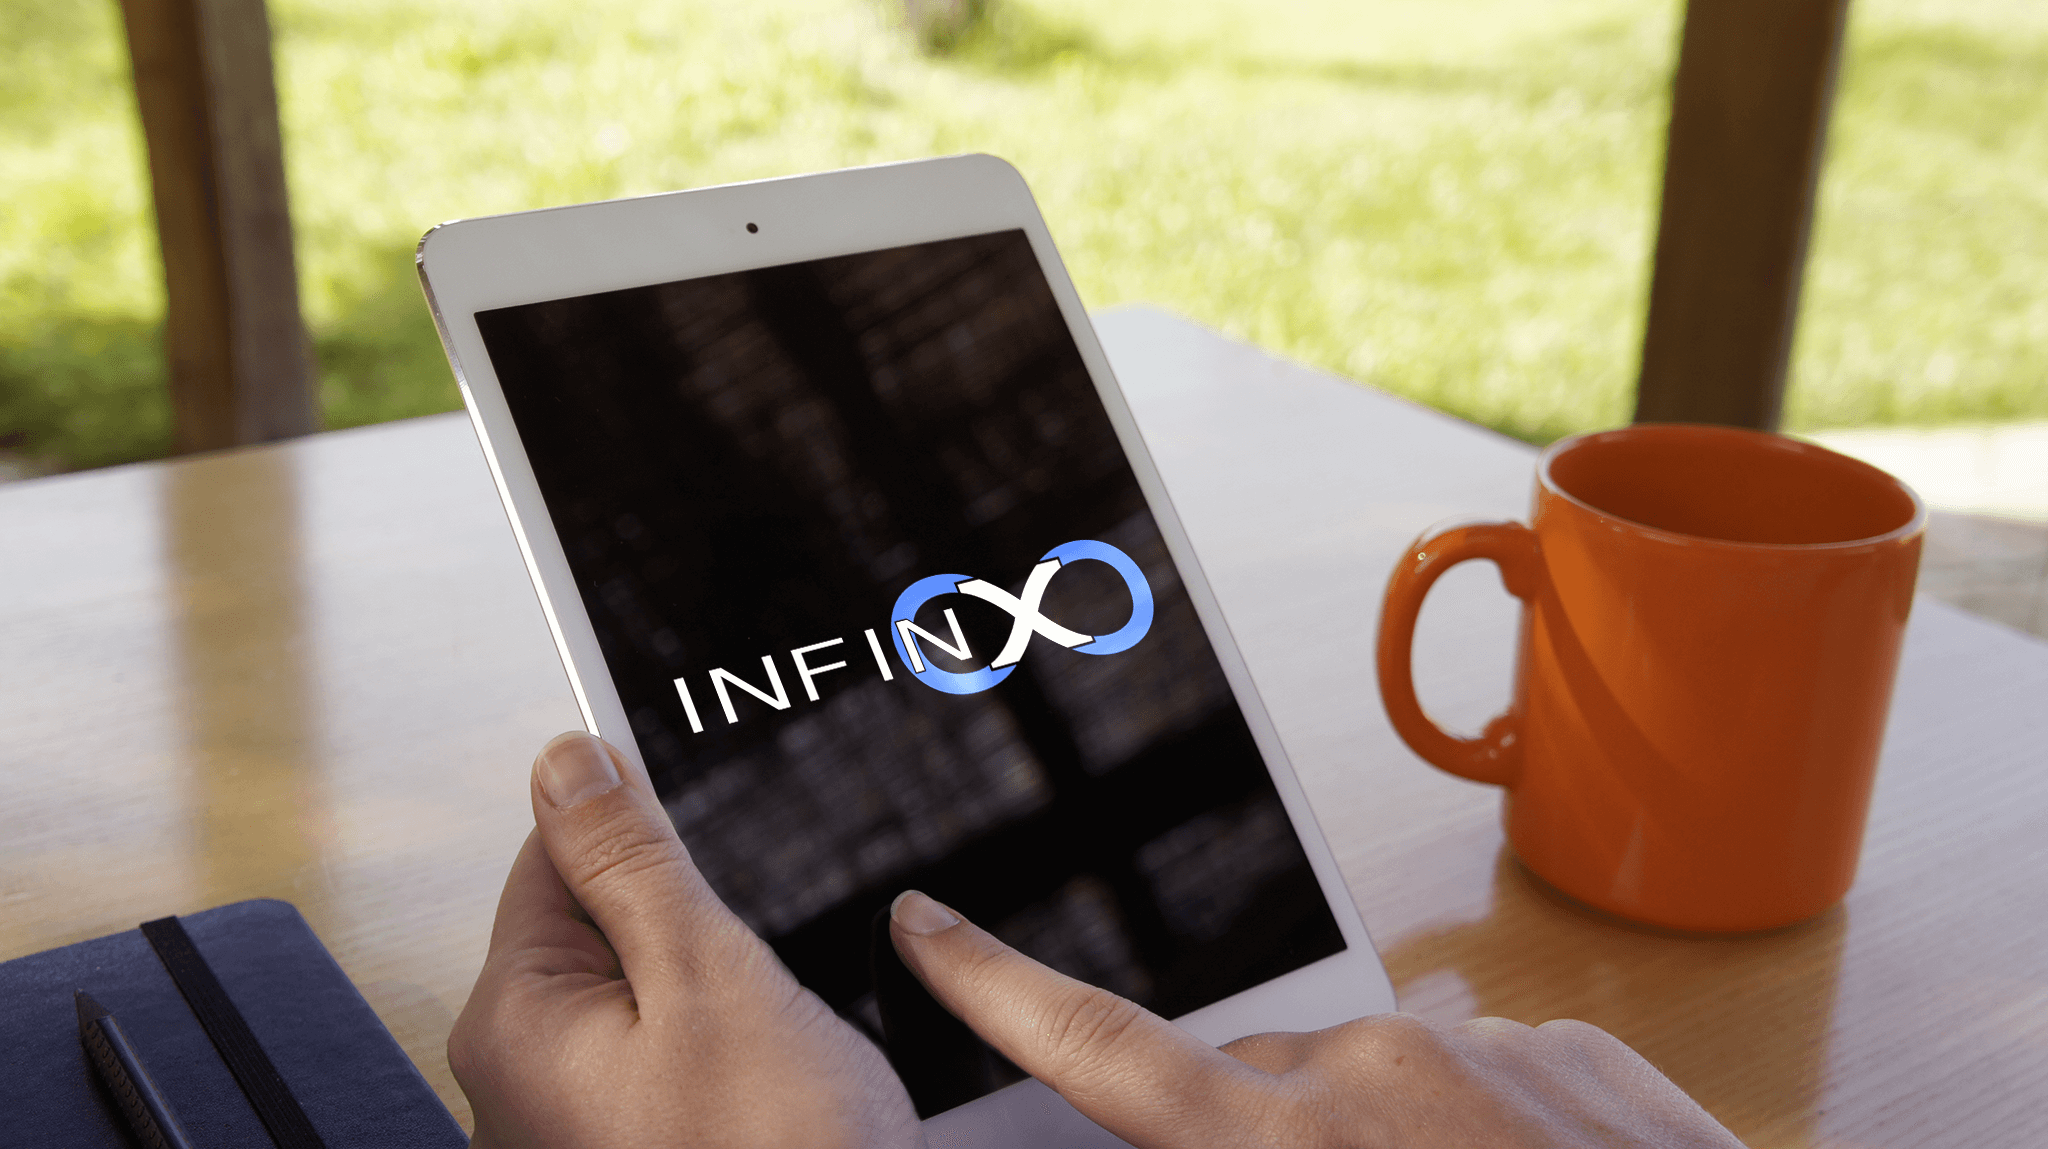 iPad App made by InfinX